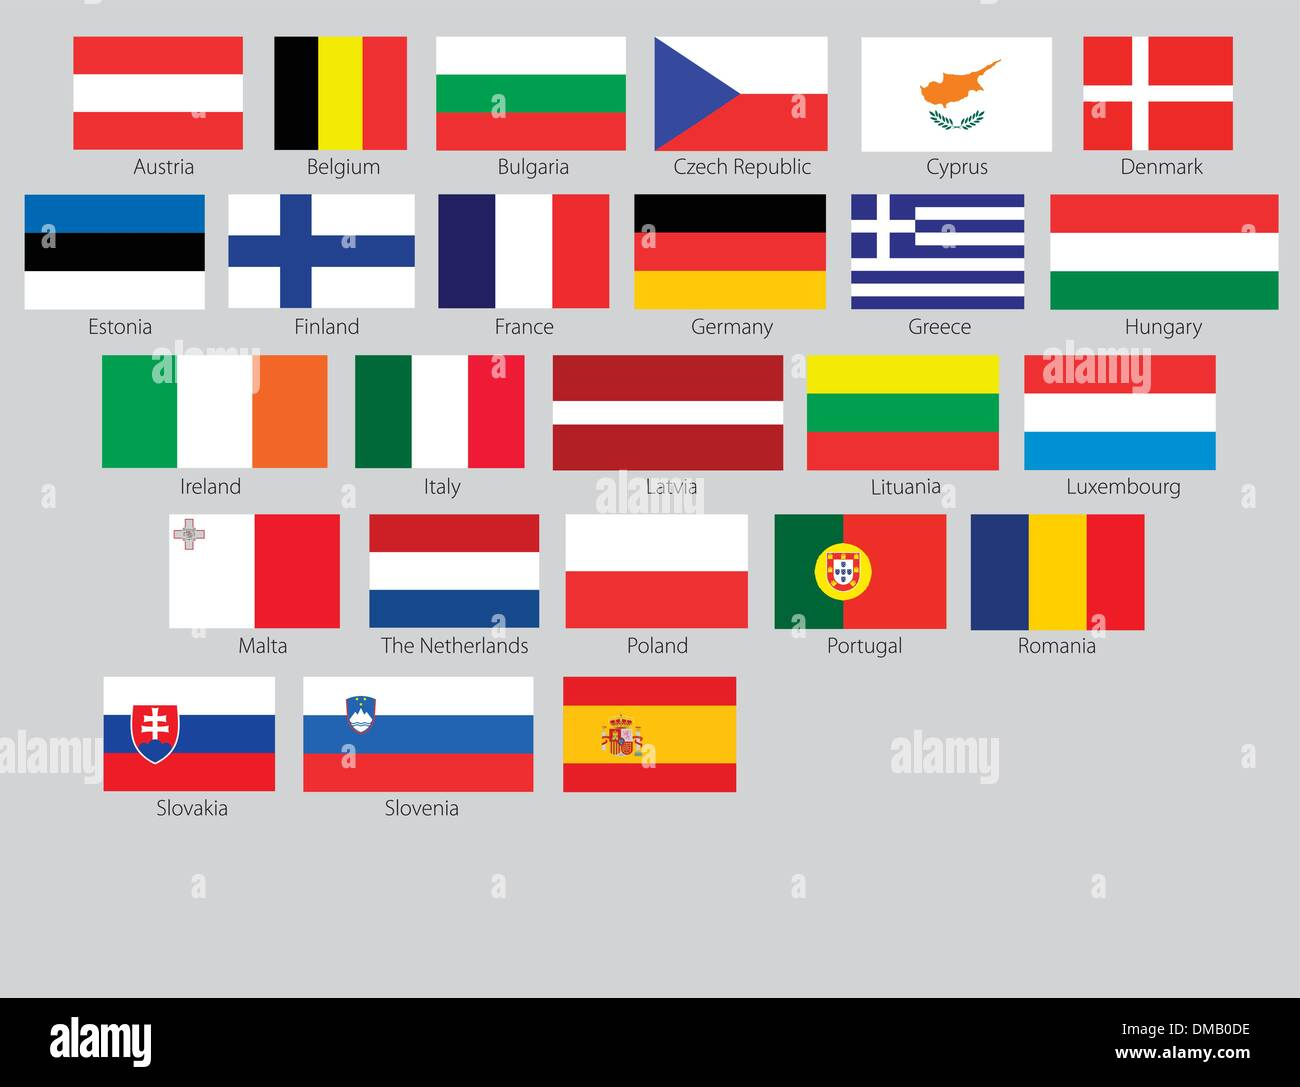 Flags of the 27 members of the European Union as of 2008 - Stock Vector